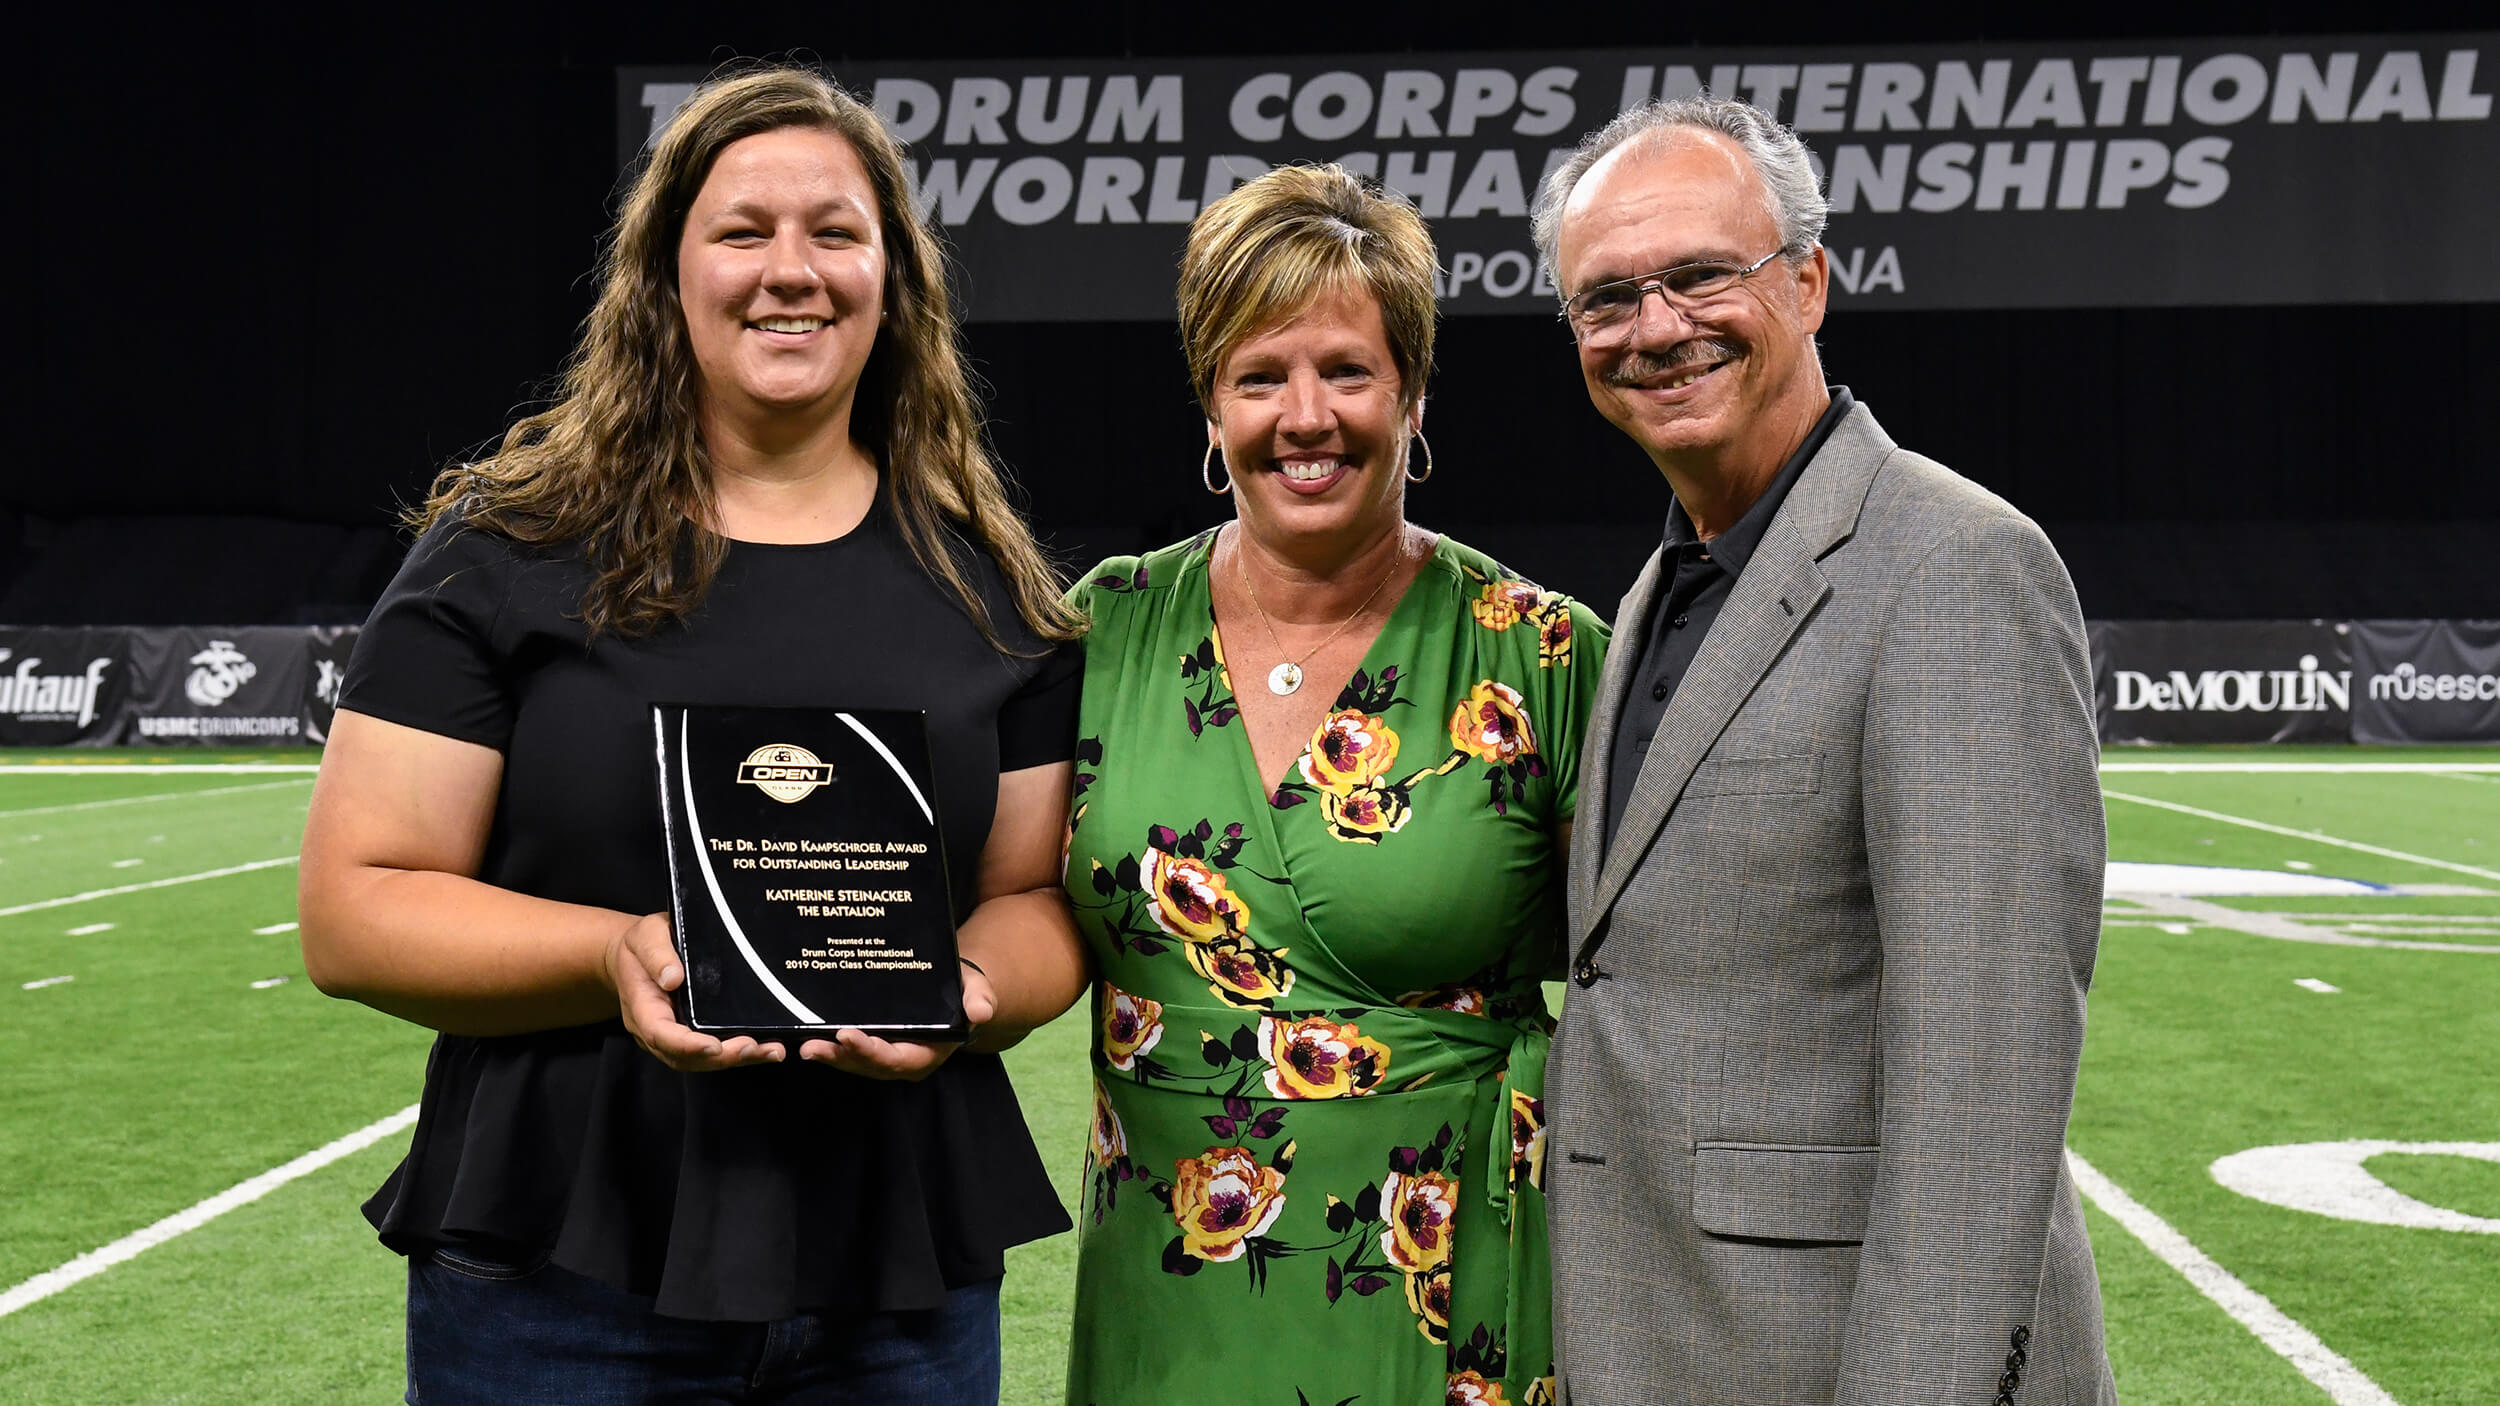 2019 DCI Directors of the Year